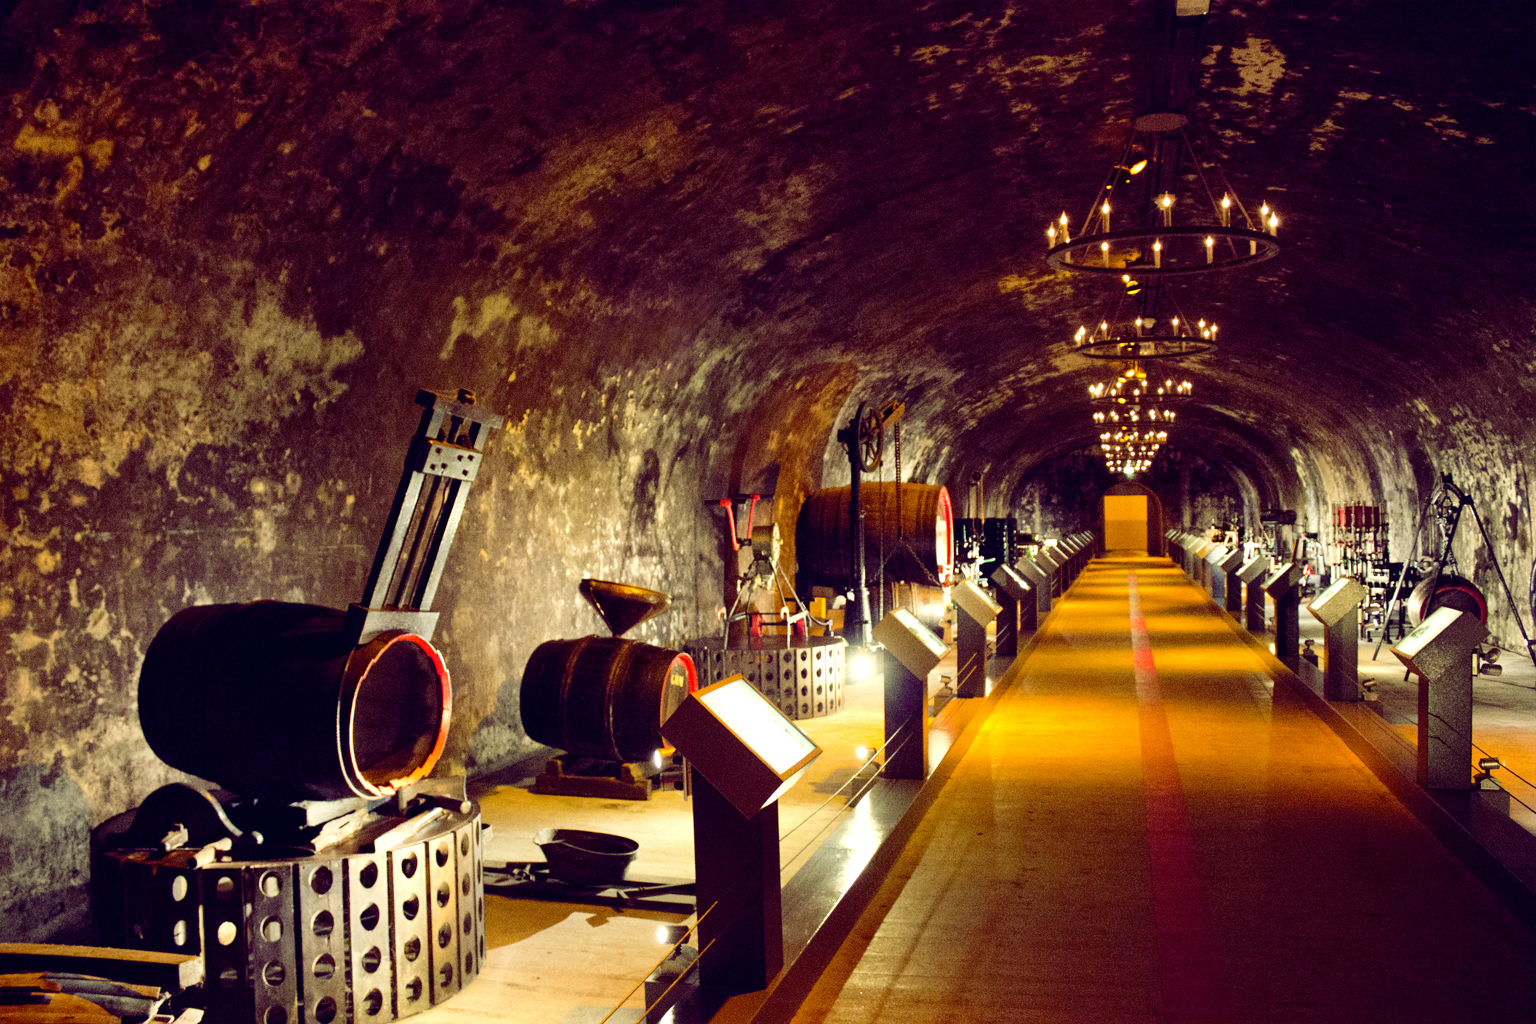 caves g h mumm cave in reims thousand wonders. Black Bedroom Furniture Sets. Home Design Ideas